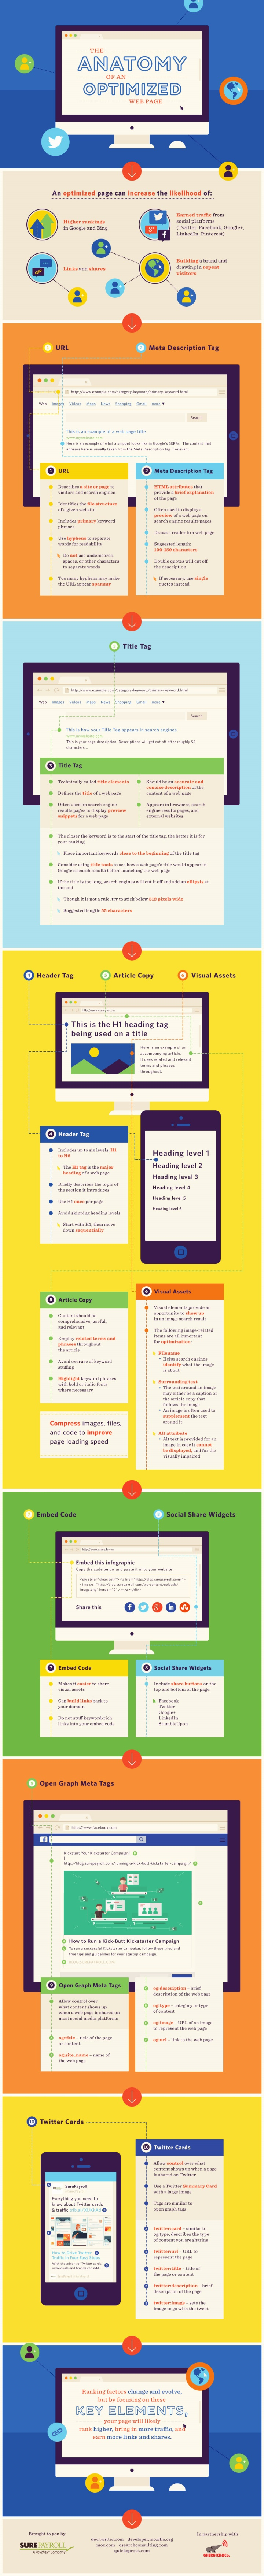 on-page-optimization-final-infographic-720x7034